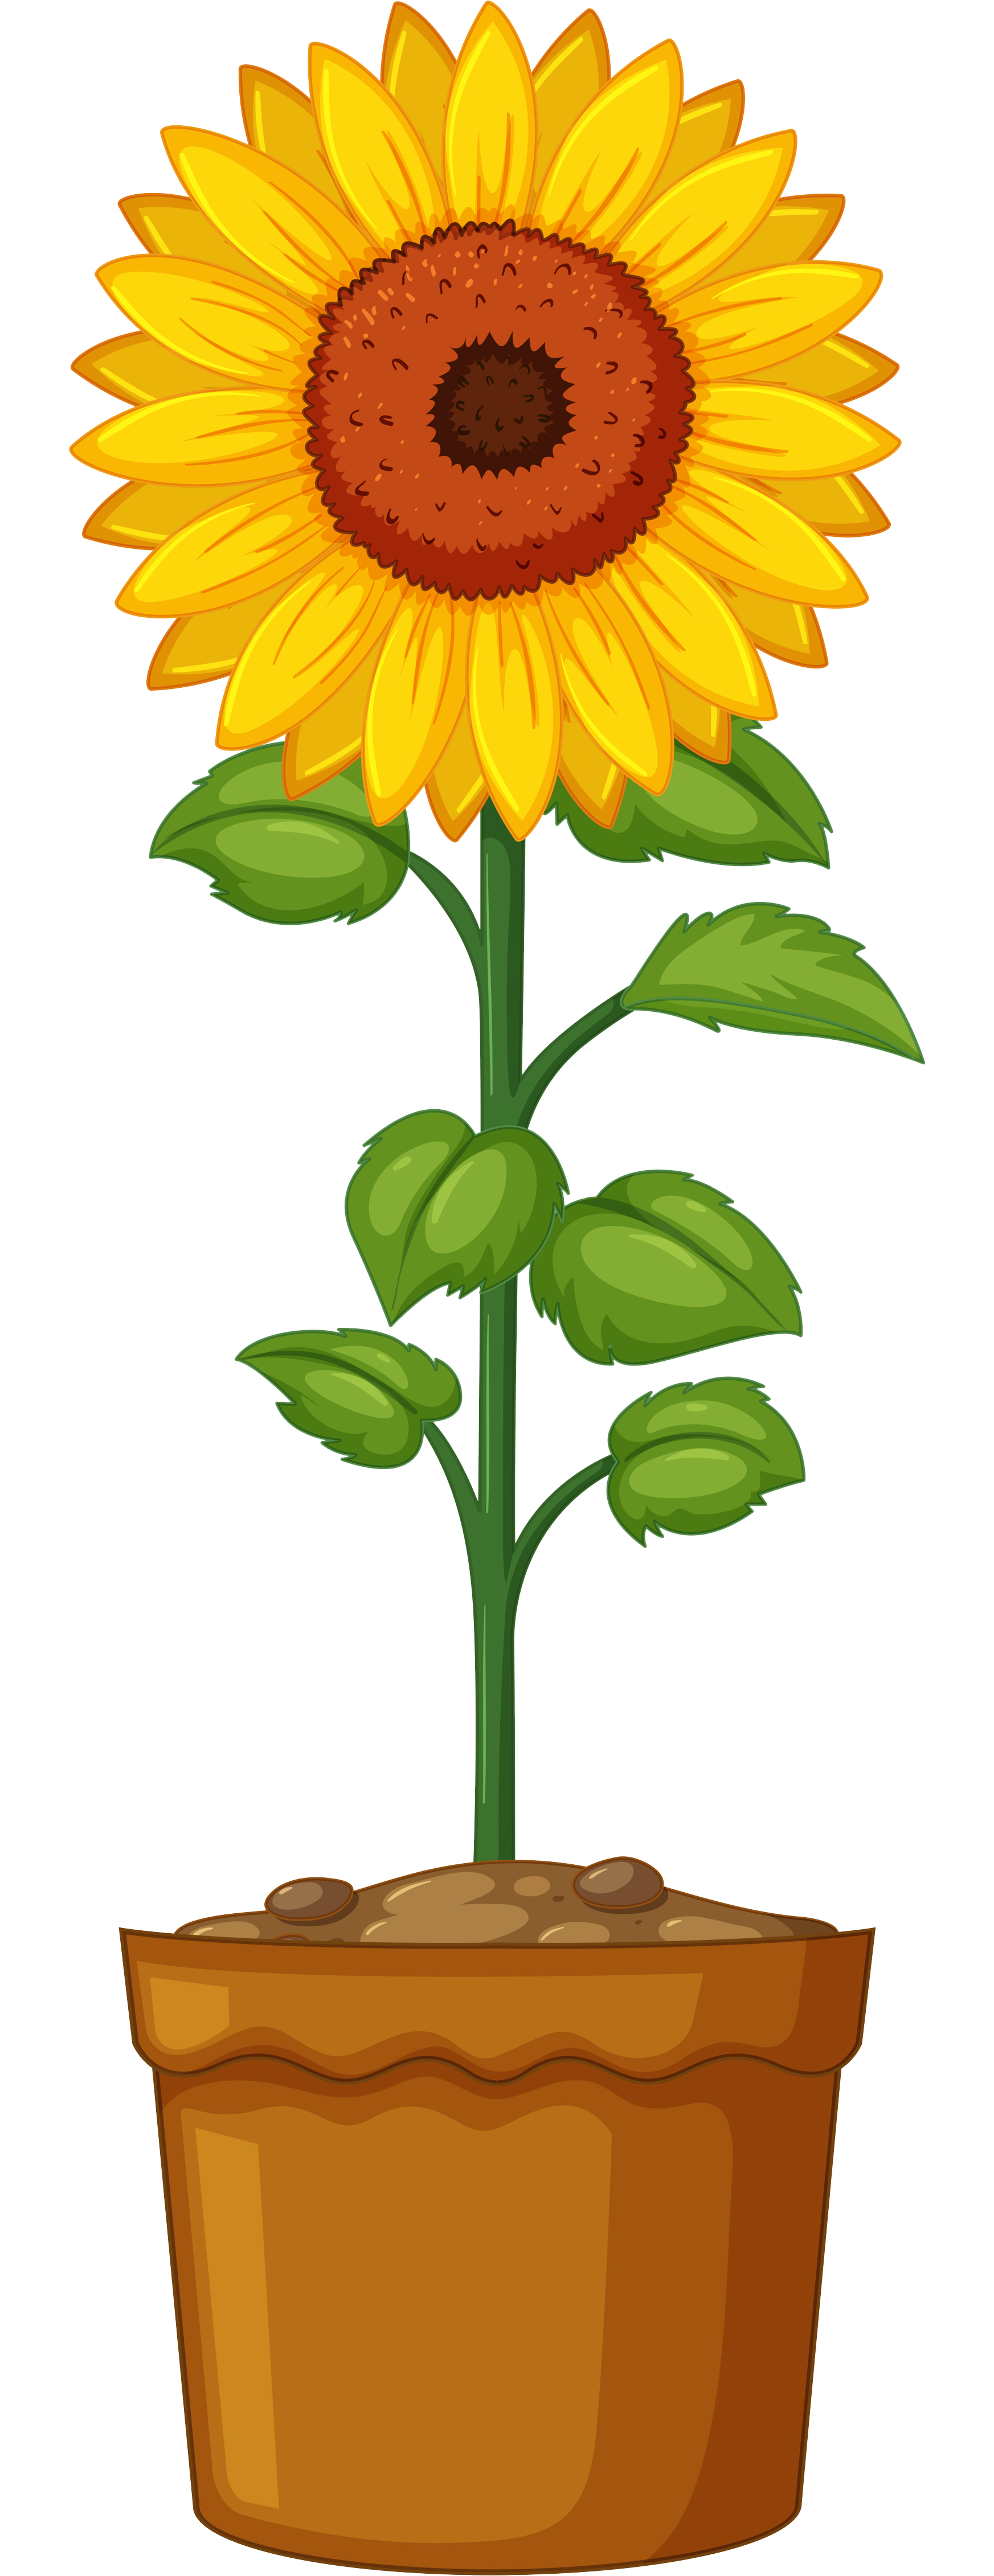 banner free download Sprout clipart sunflower stem. Britton planting lenawee district